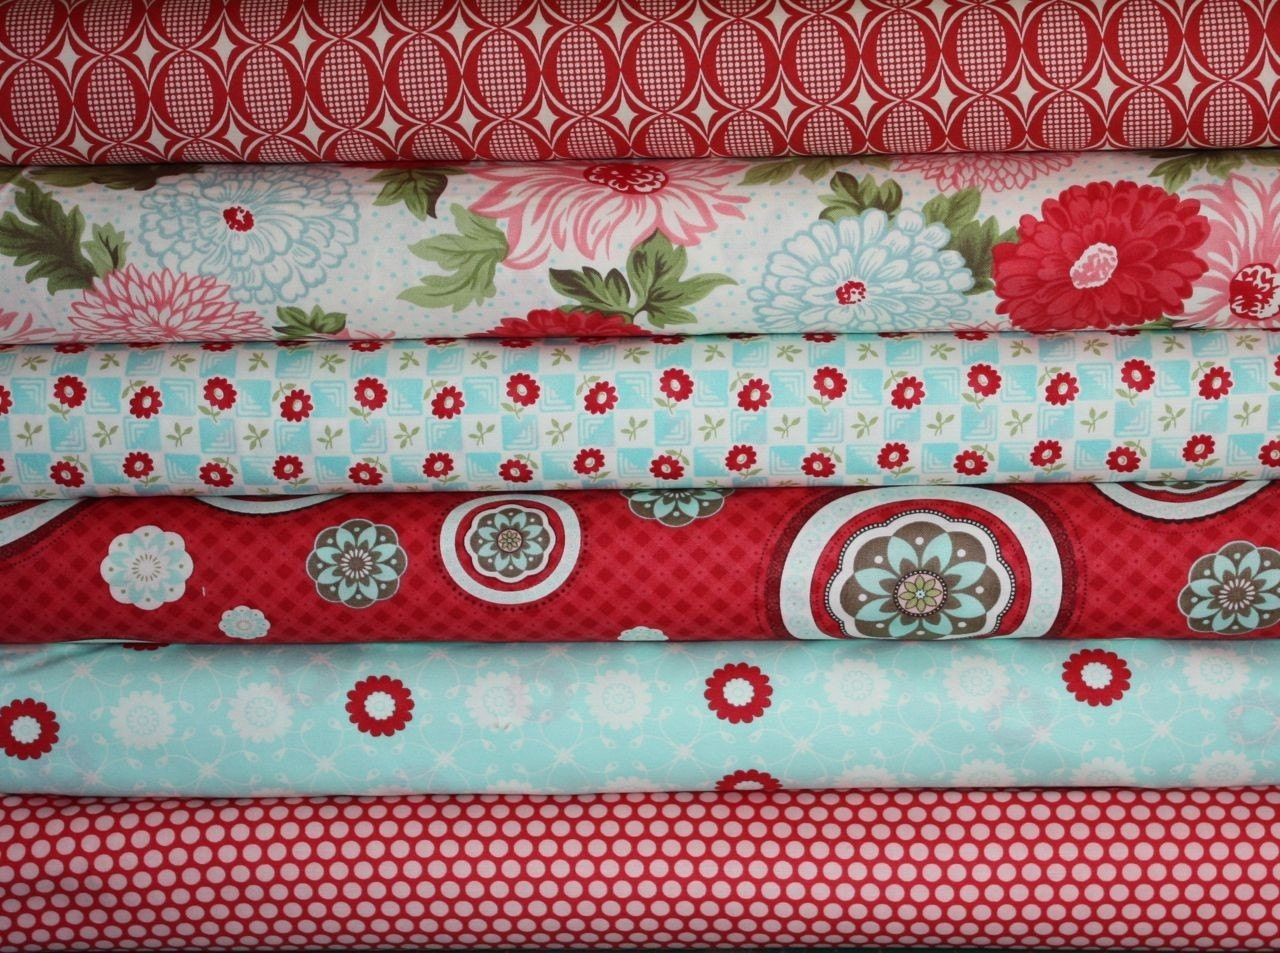 Bliss Fabric by Bonnie and Camille for Moda- Fat Quarter Bundle, 6 total